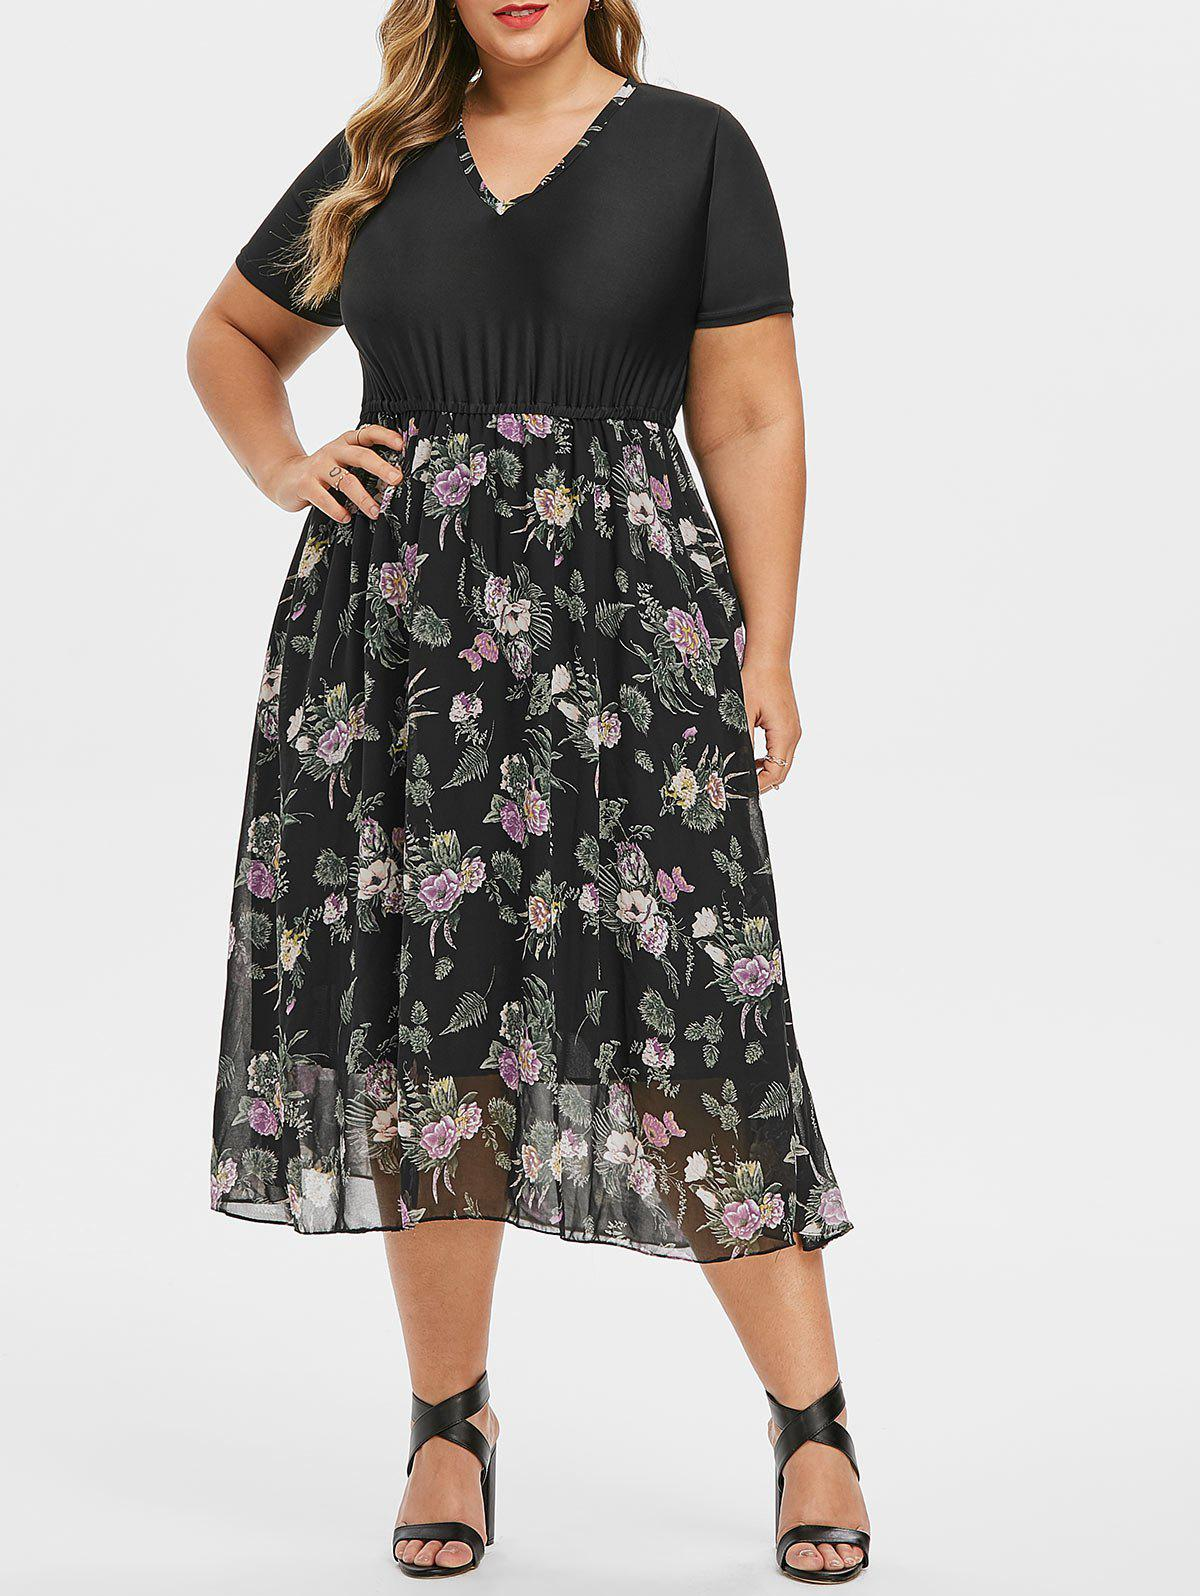 Contrast Floral V Neck A Line Plus Size Dress - BLACK 4X